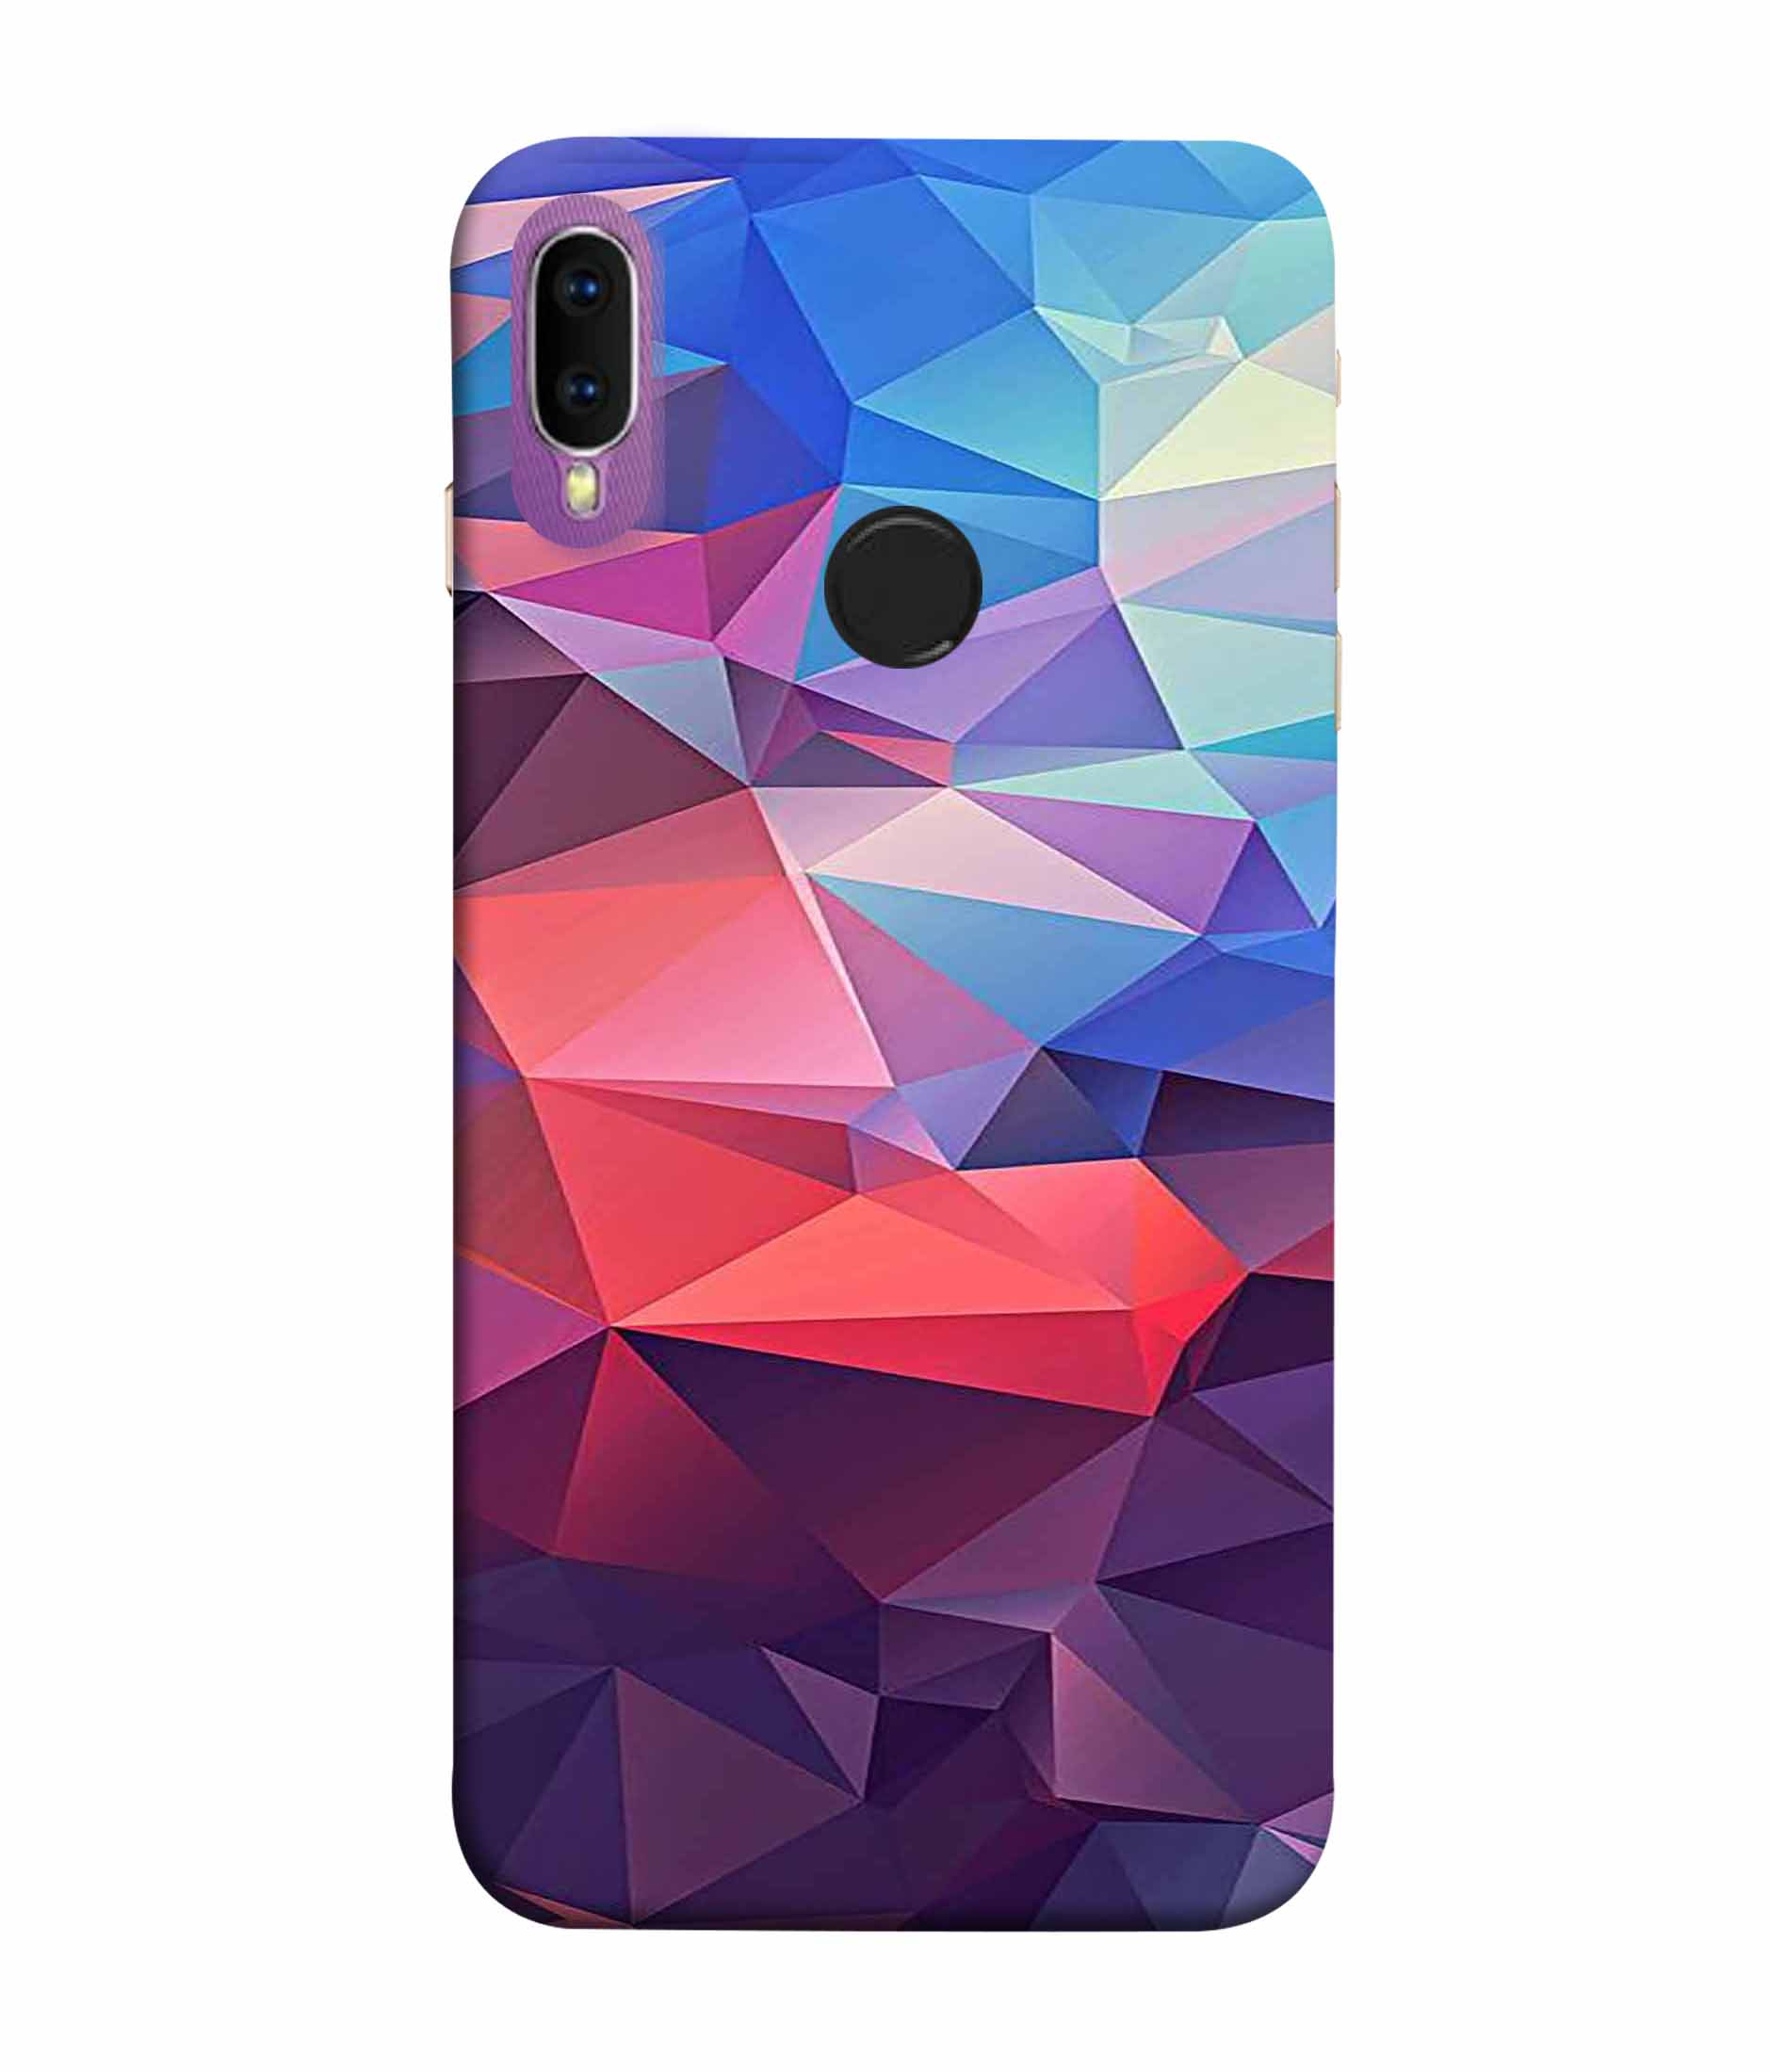 Abstract Phone Wallpaper 4k Mobile Back Cover Kirak